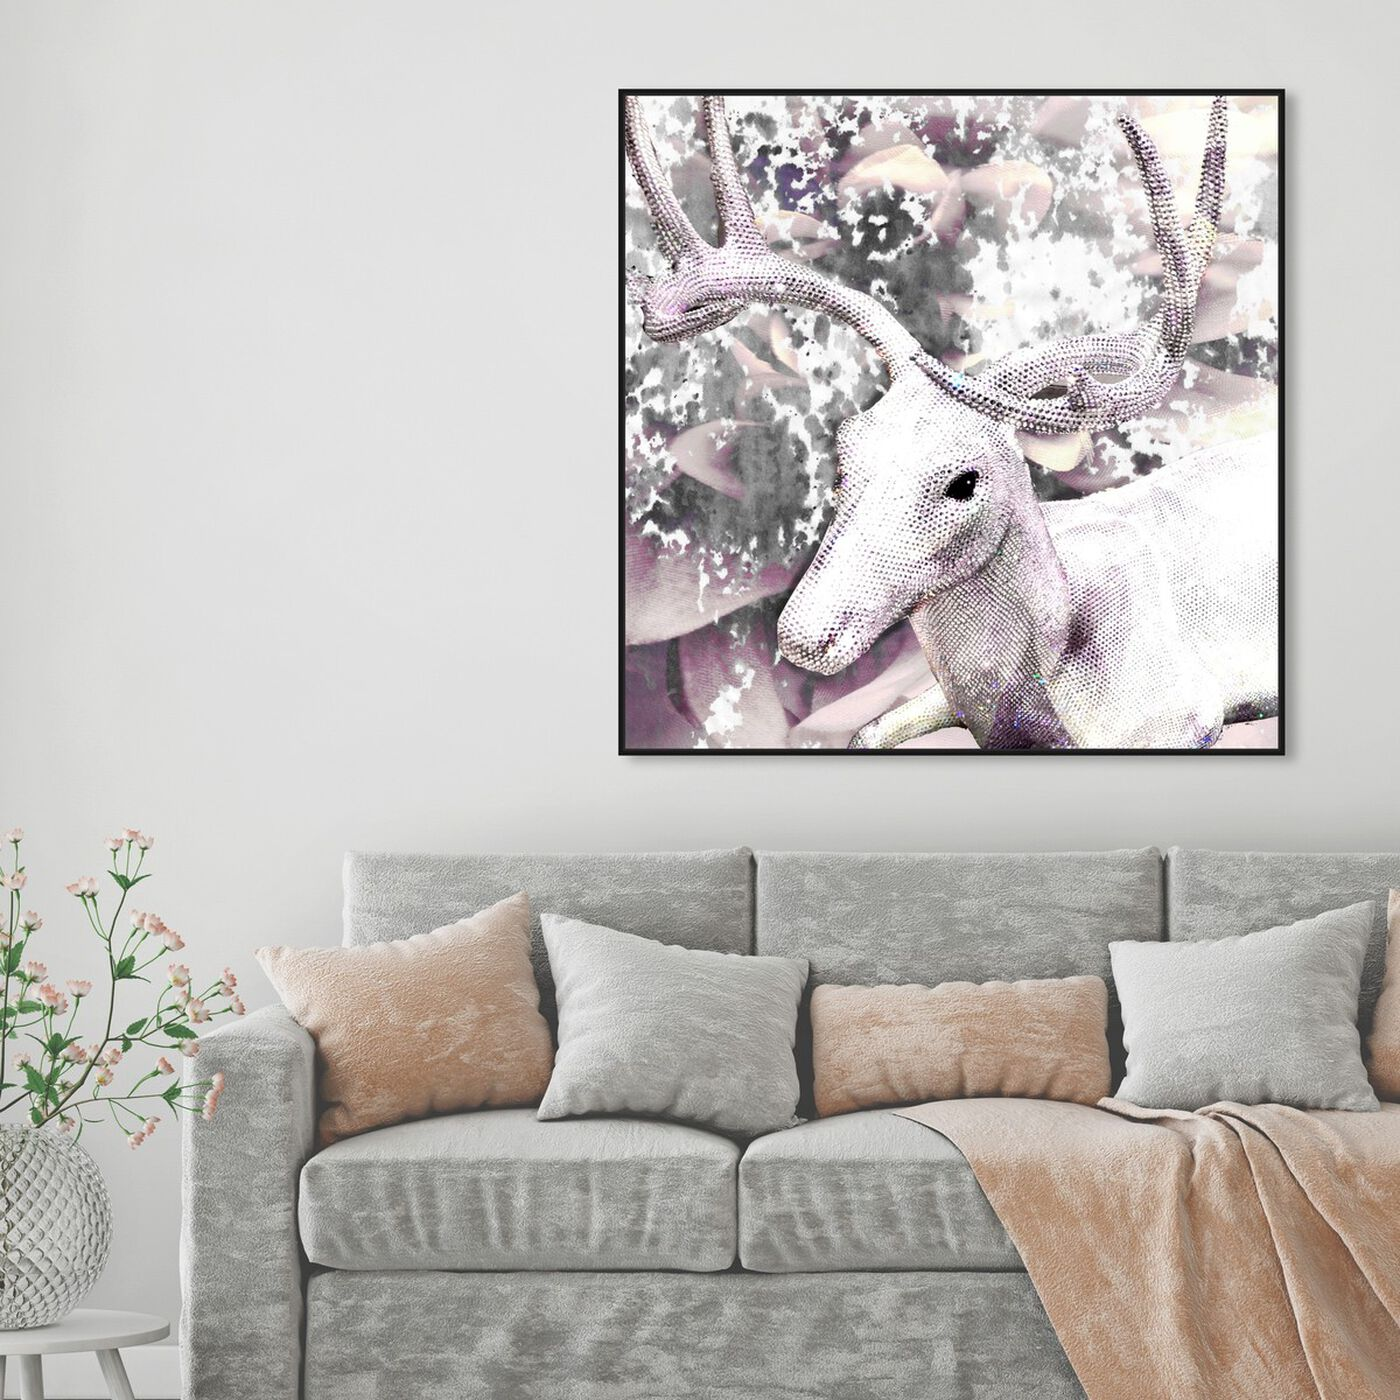 Hanging view of Marvelous Creature featuring animals and zoo and wild animals art.